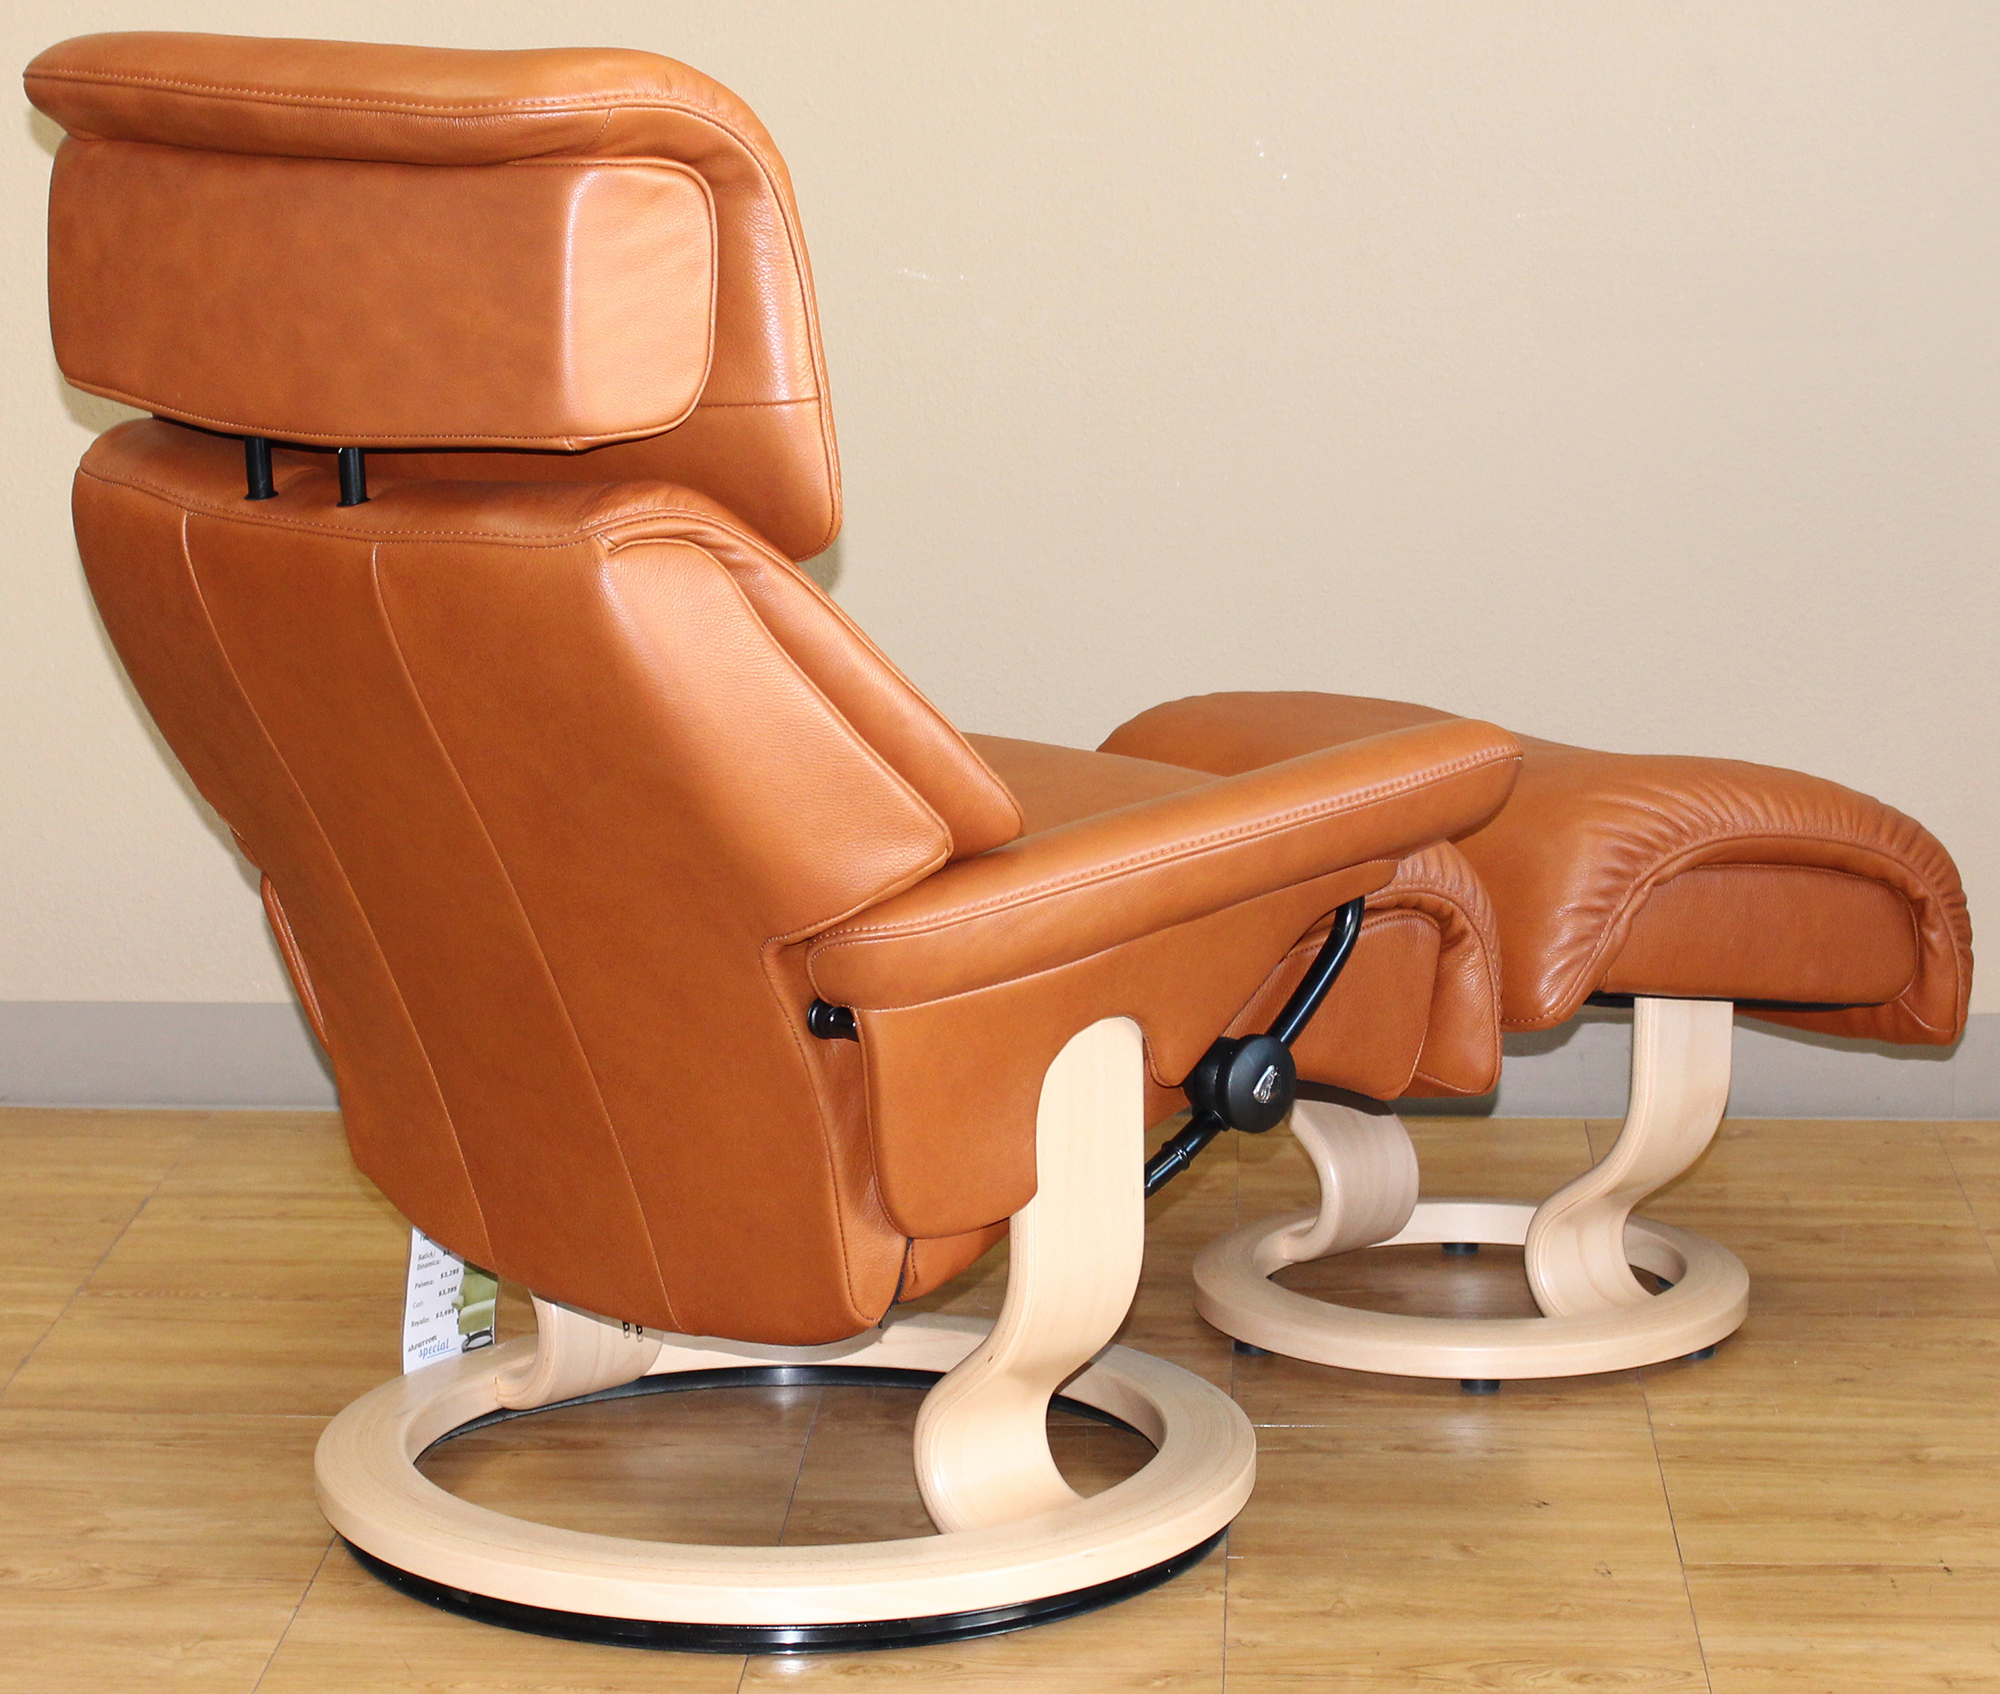 Stressless Dream Royalin TigerEye Leather Recliner Chair by Ekornes & Stressless Dream Royalin TigerEye Leather by Ekornes - Stressless ... islam-shia.org